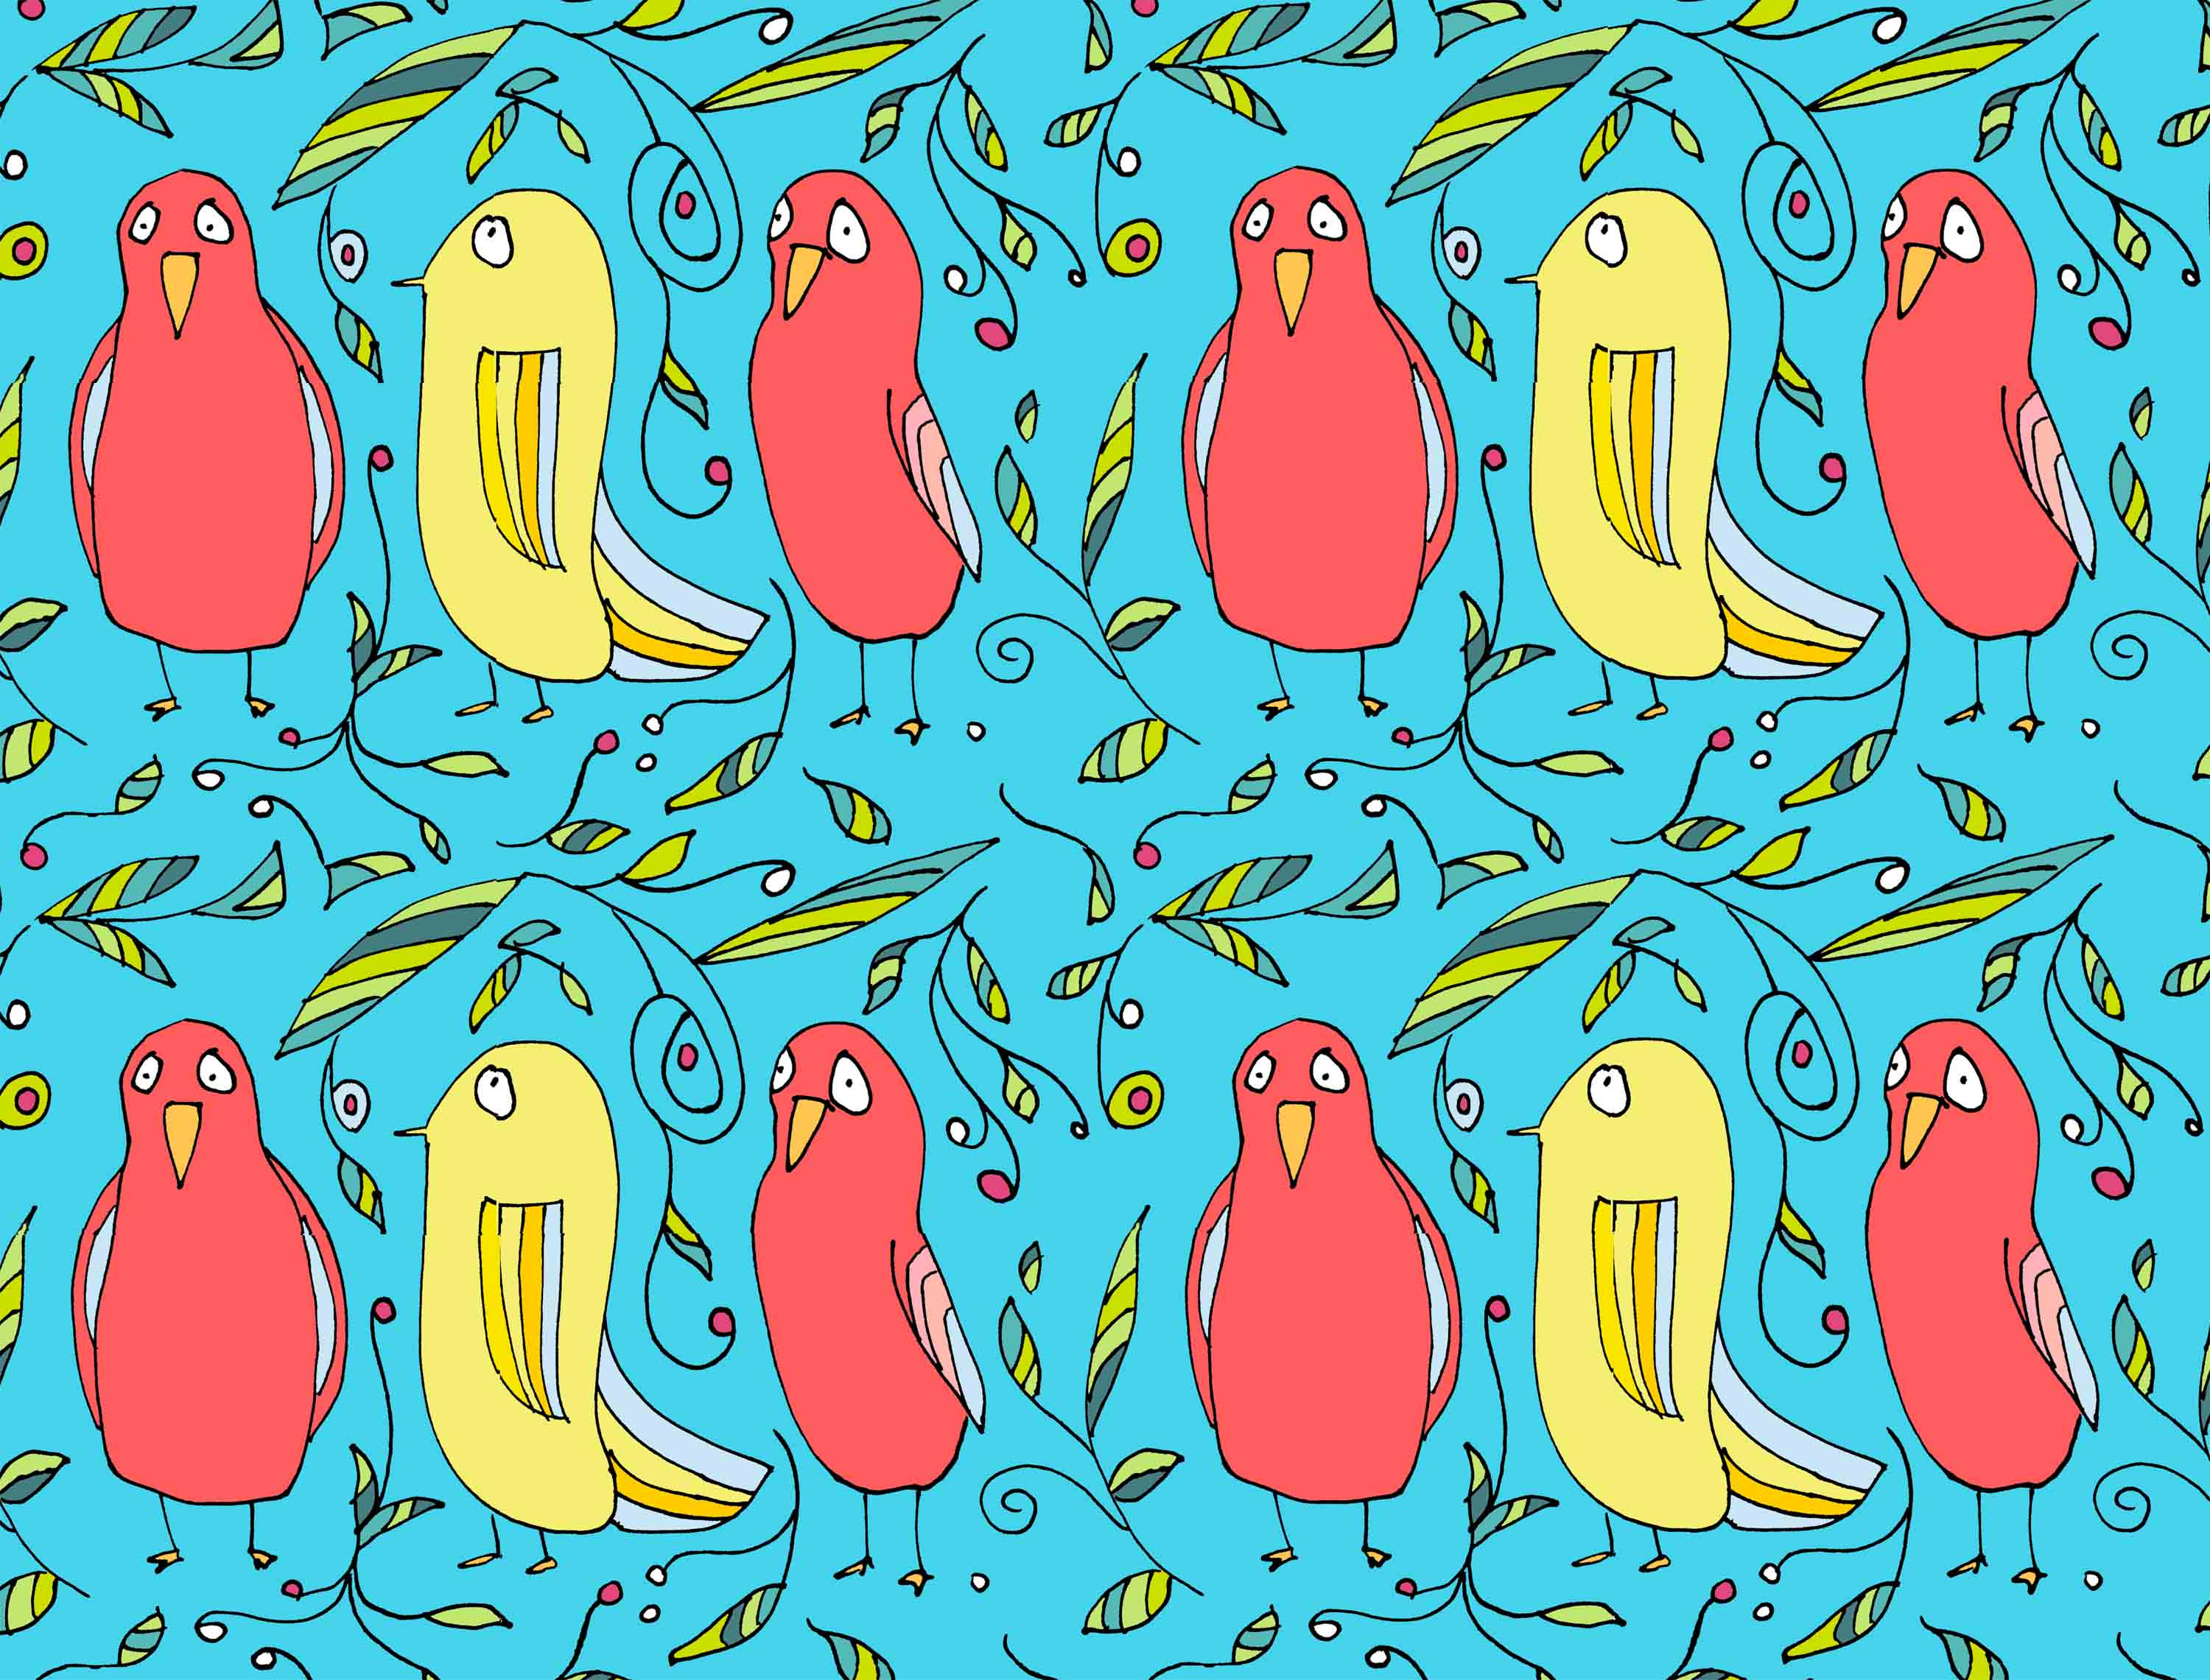 art every day number 122 drawing illustration pattern red birds yellow